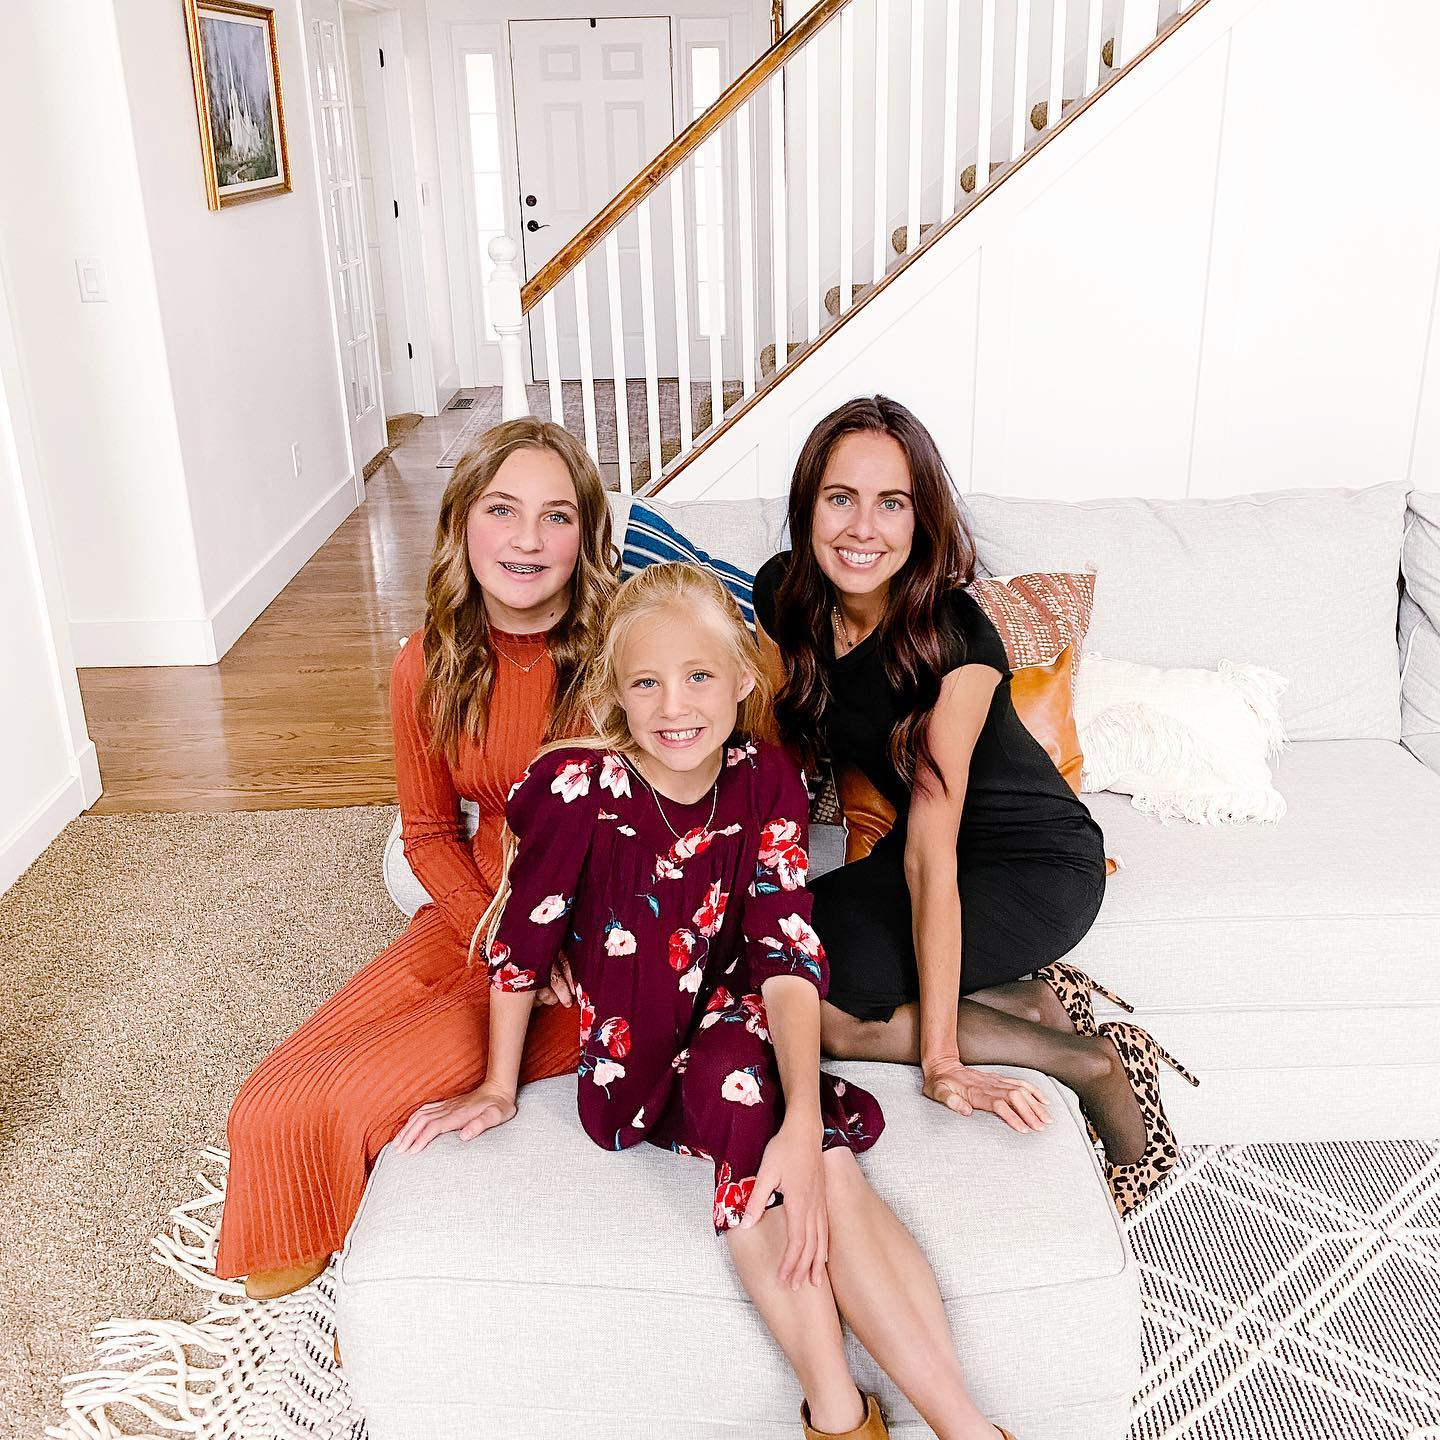 A photo of a mother with no makeup on sitting next to her daughters on a couch.